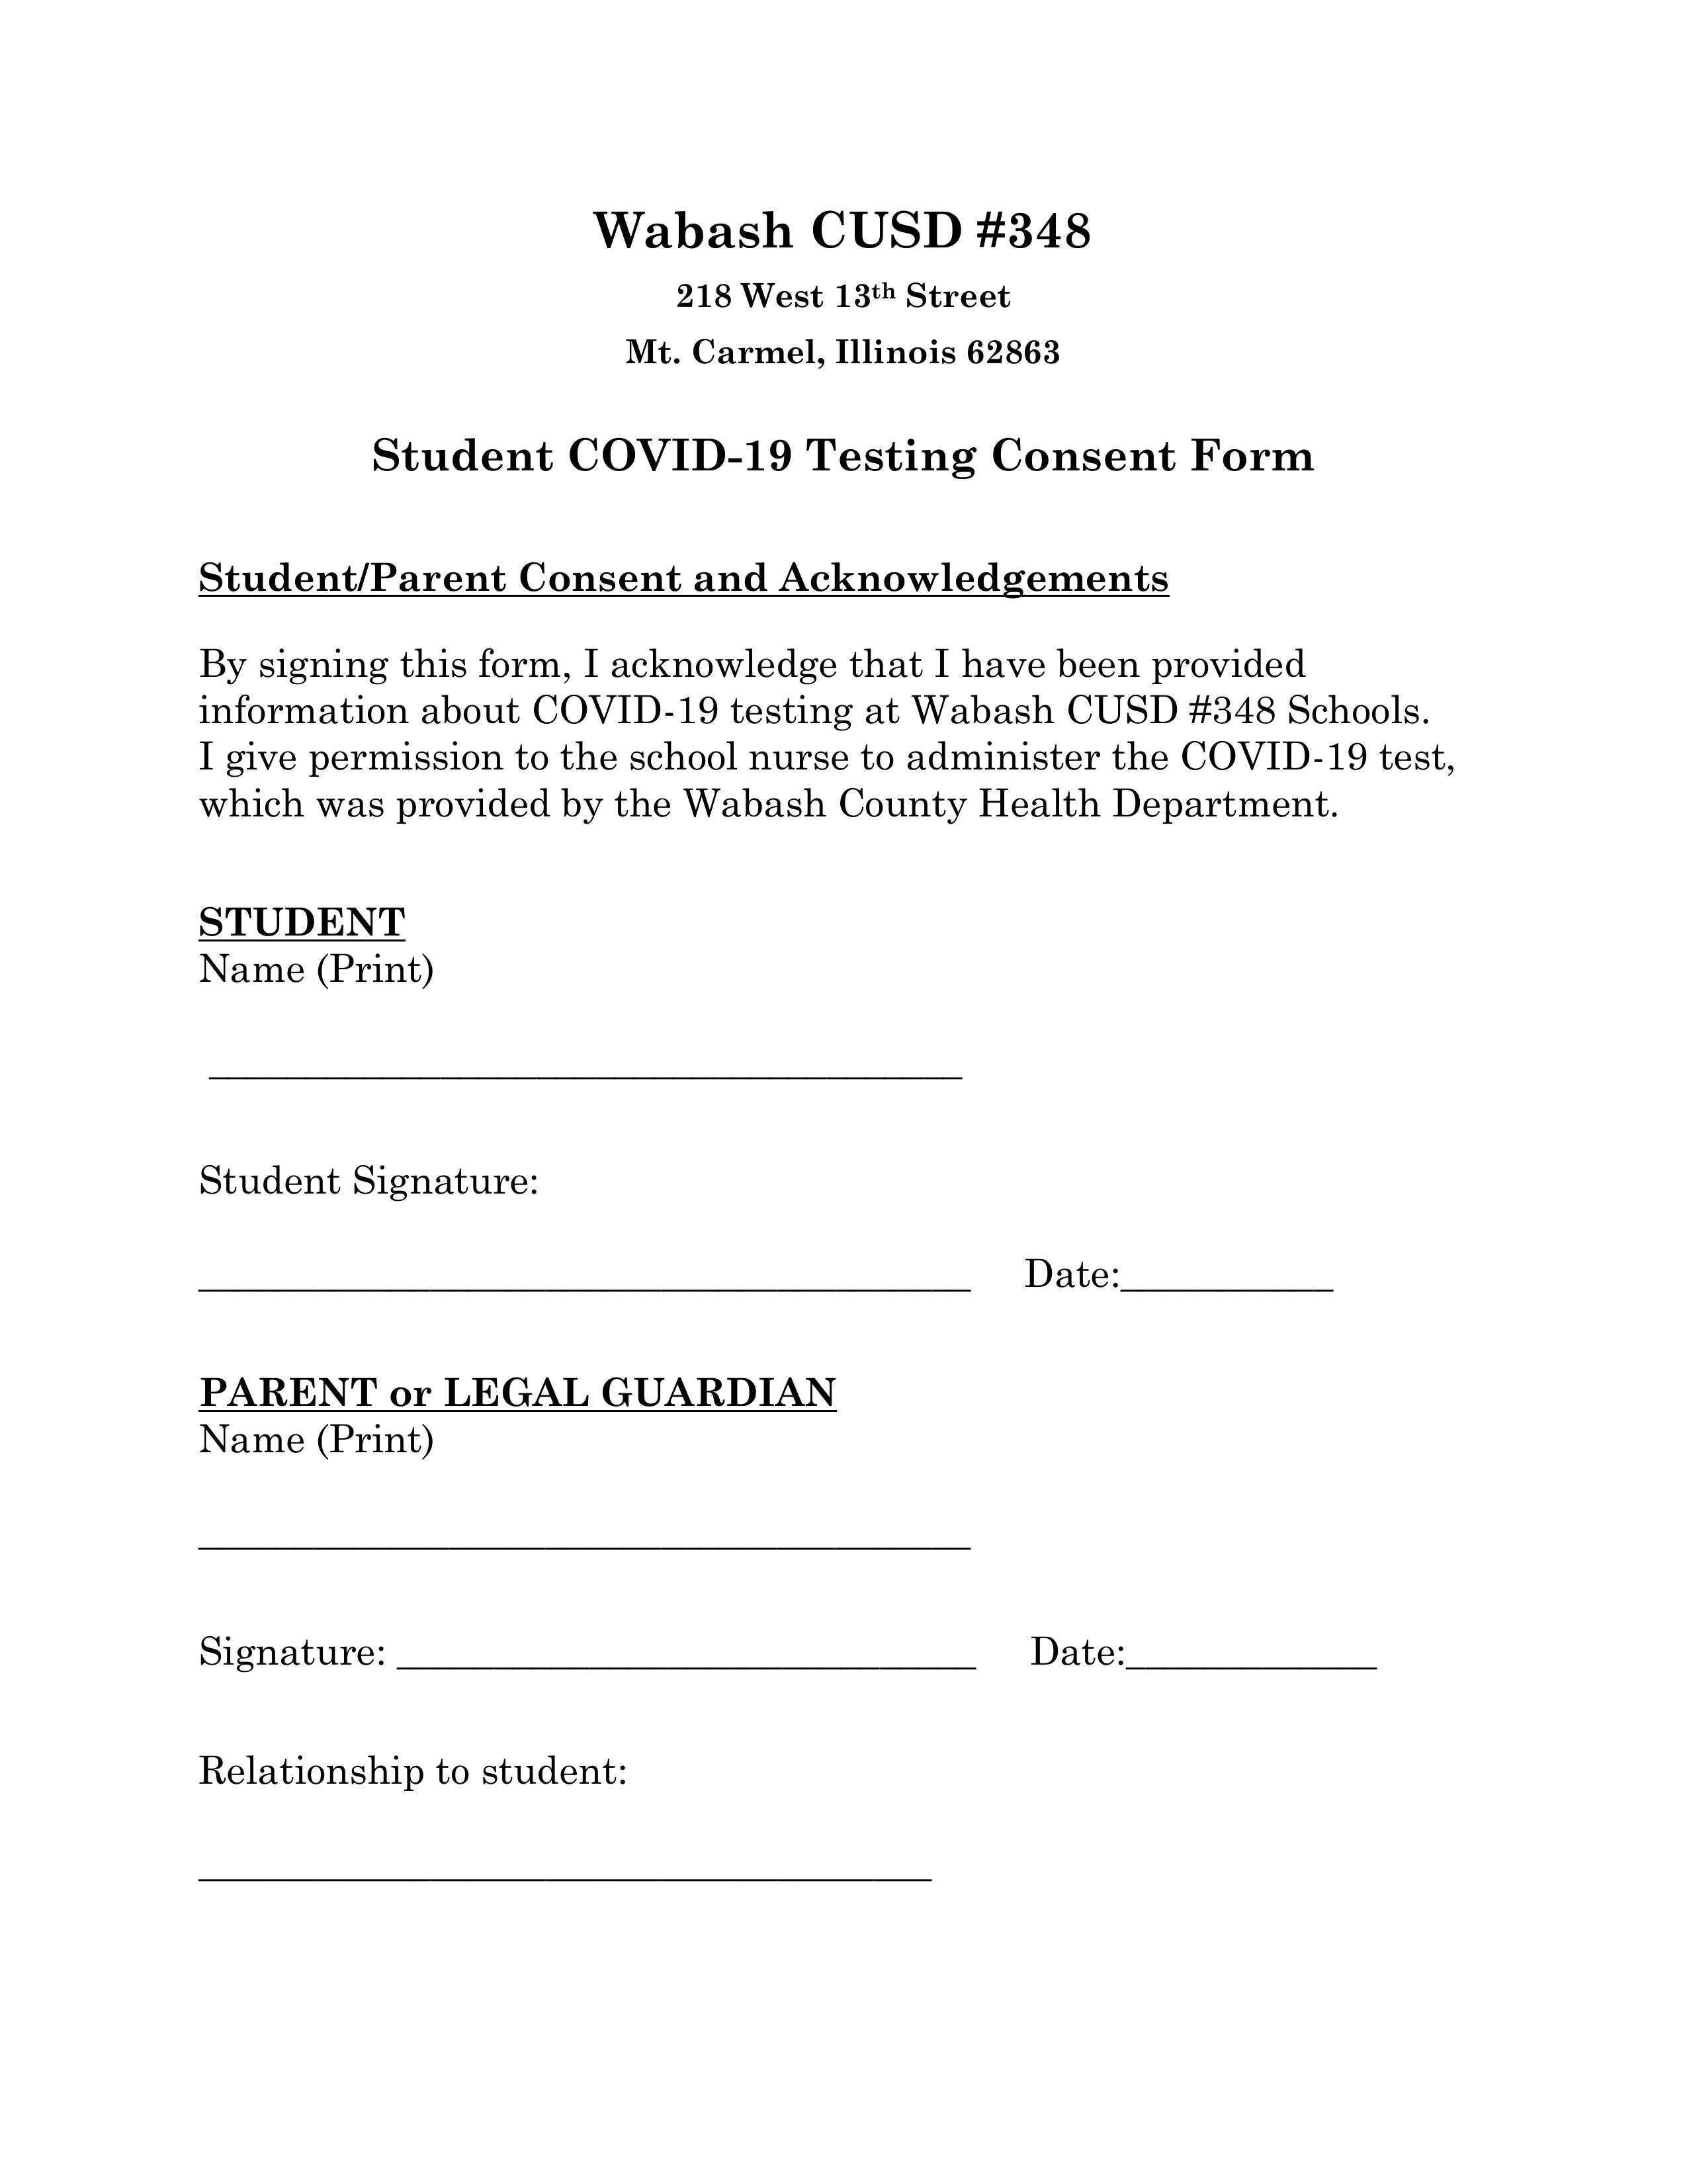 Consent for covid 19 testing